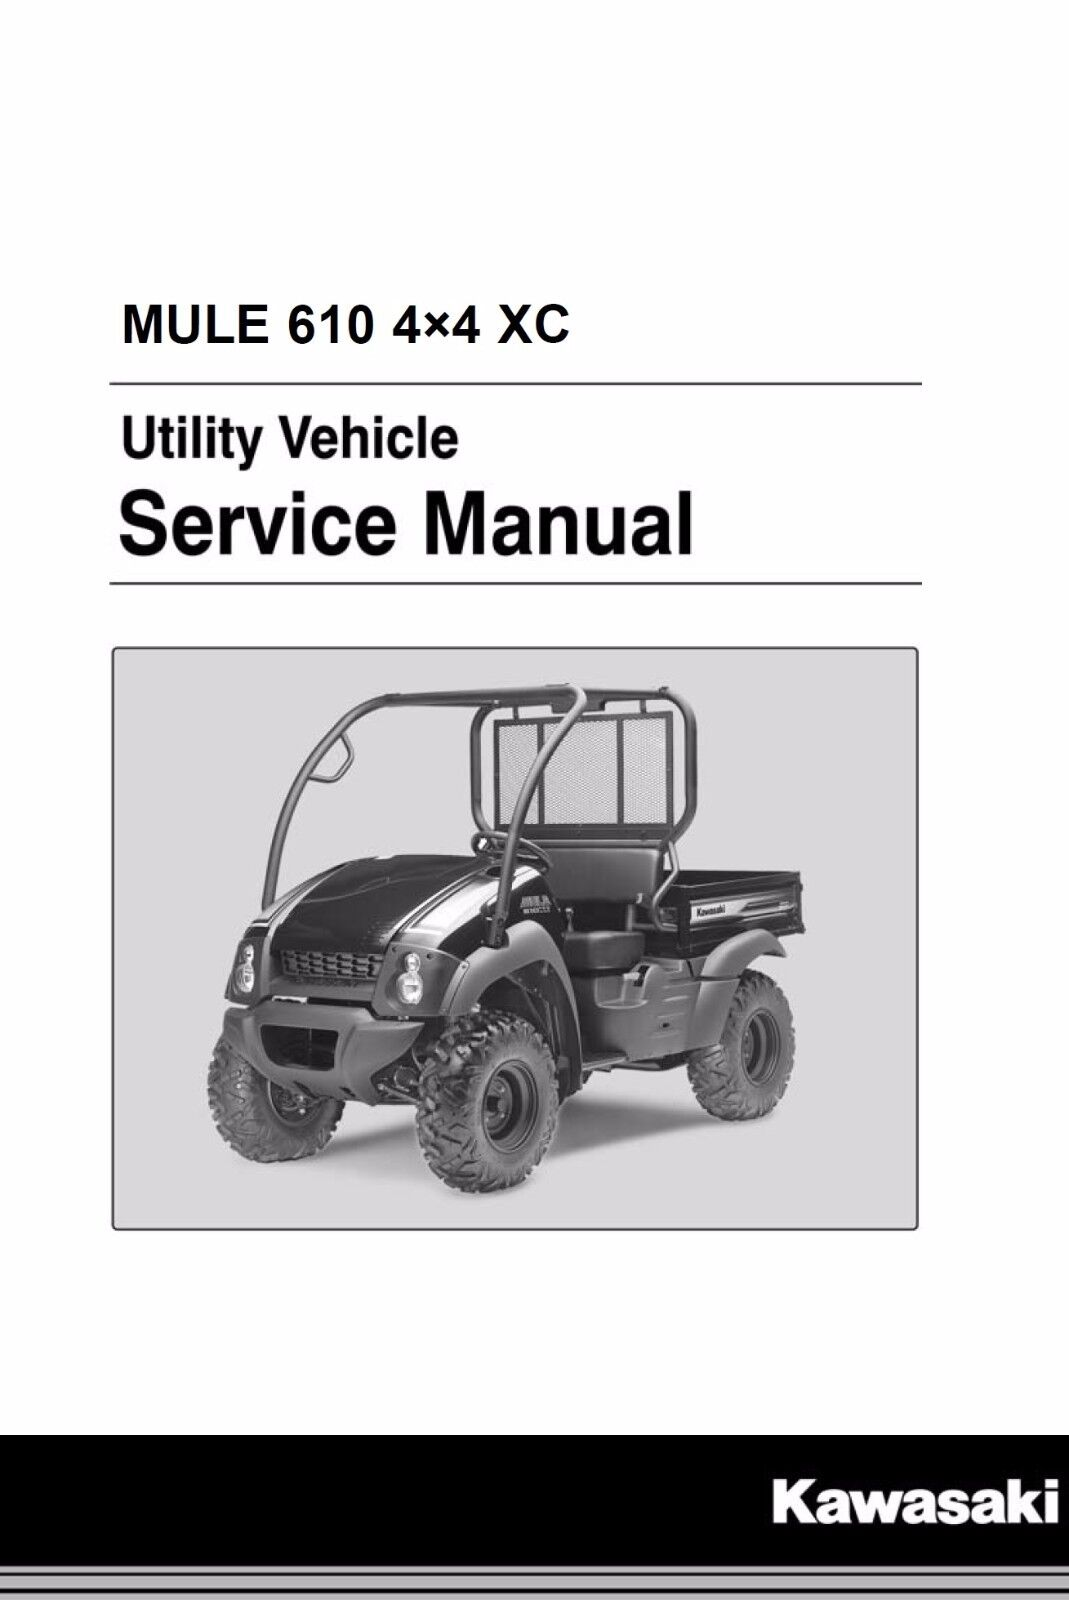 Kawasaki Mule 610 4x4 KAF400 2010 2011 2012 2013 2014 2015 2016 service  manual 1 of 3Only 1 available ...